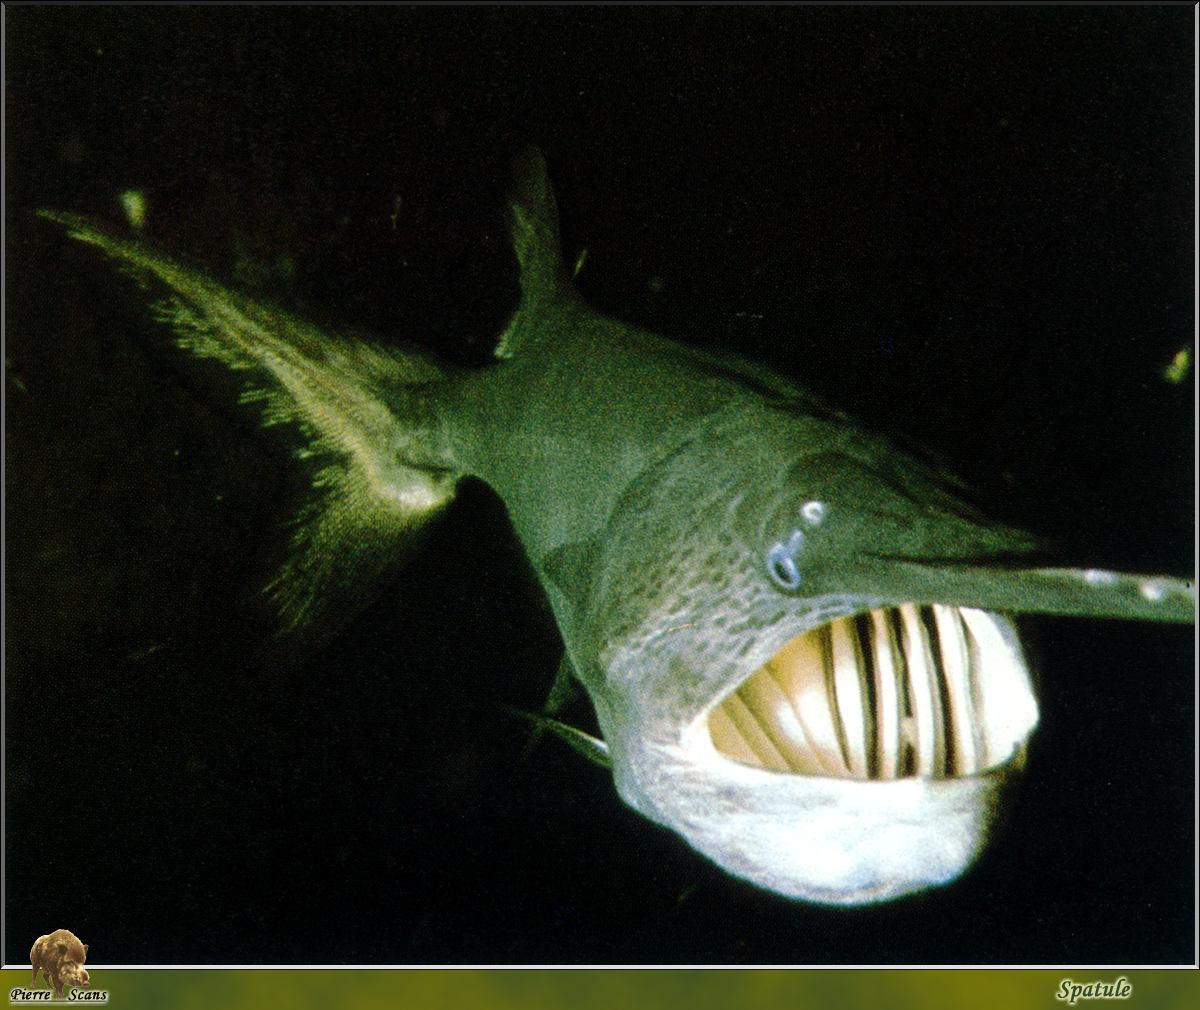 The American Paddlefish swims with it's mouth open constantly to filter plankton